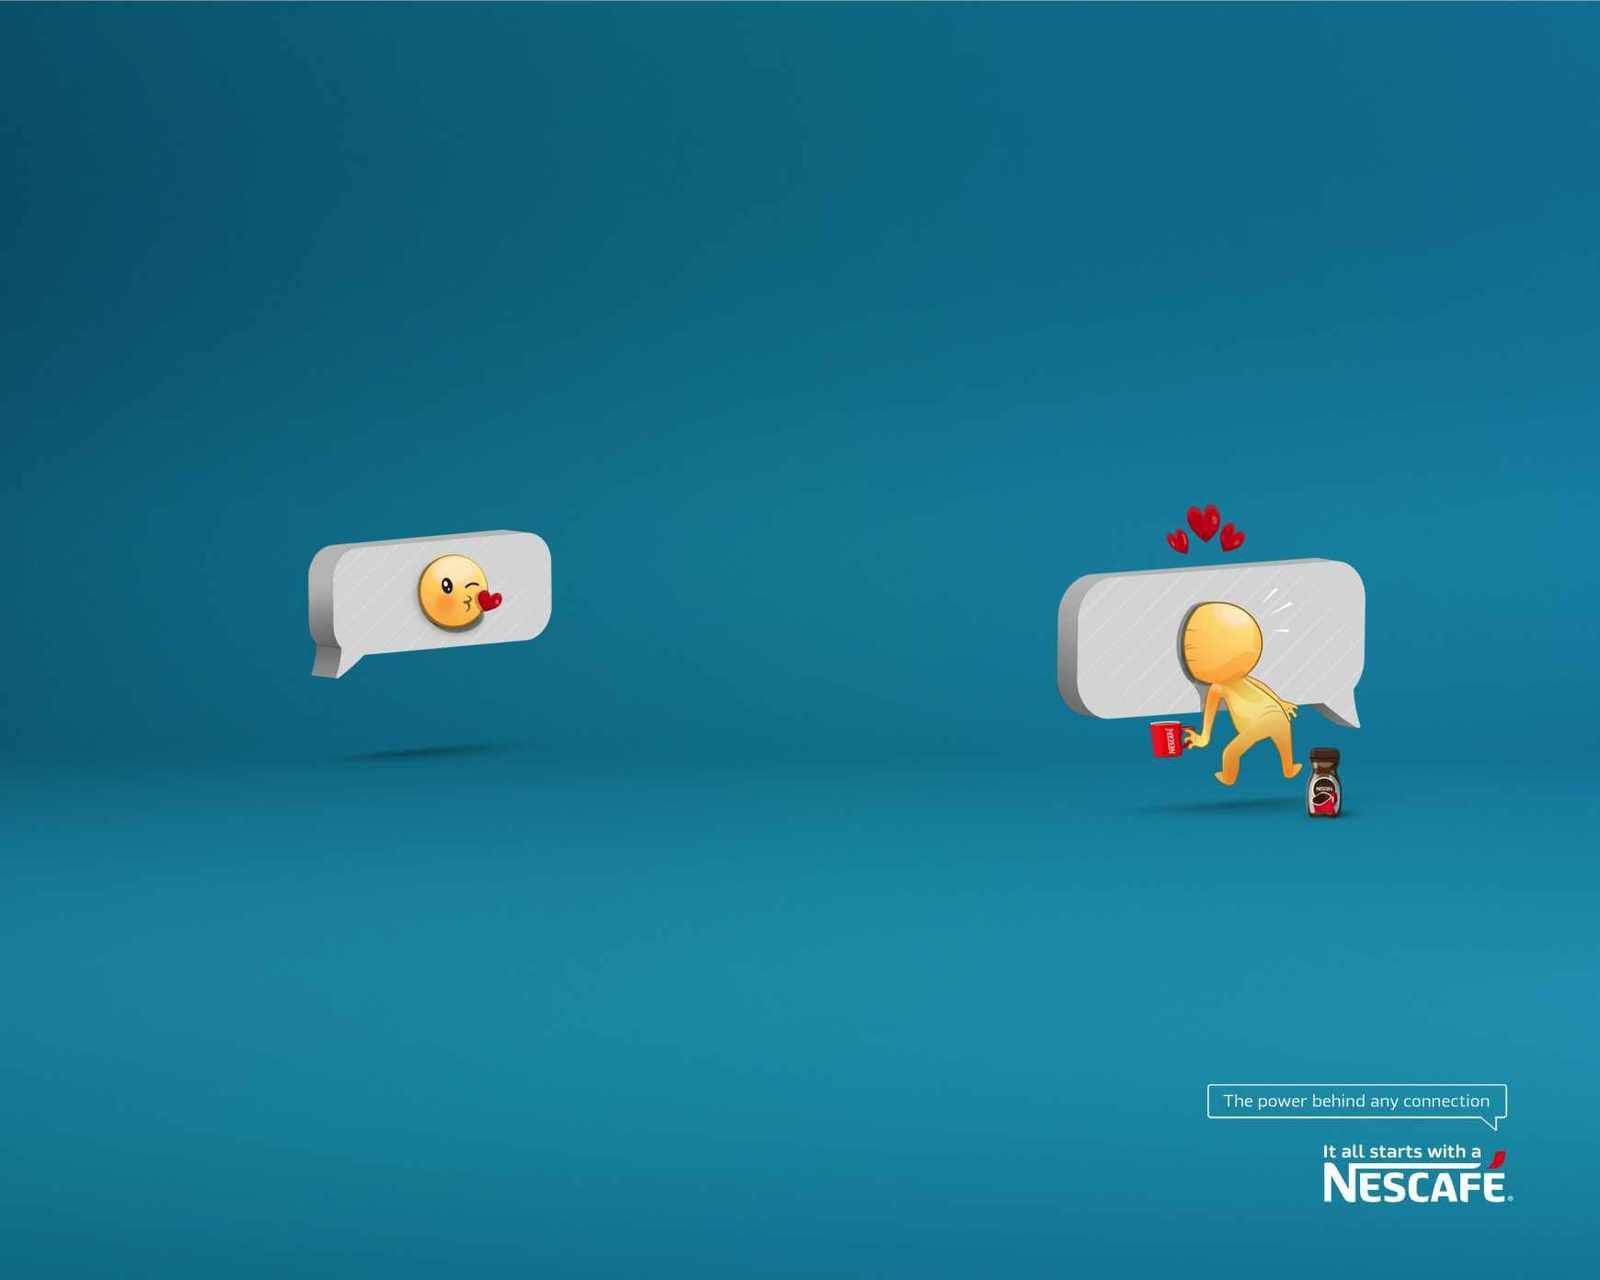 """The power behind any connection"" - Nescafé (café) 